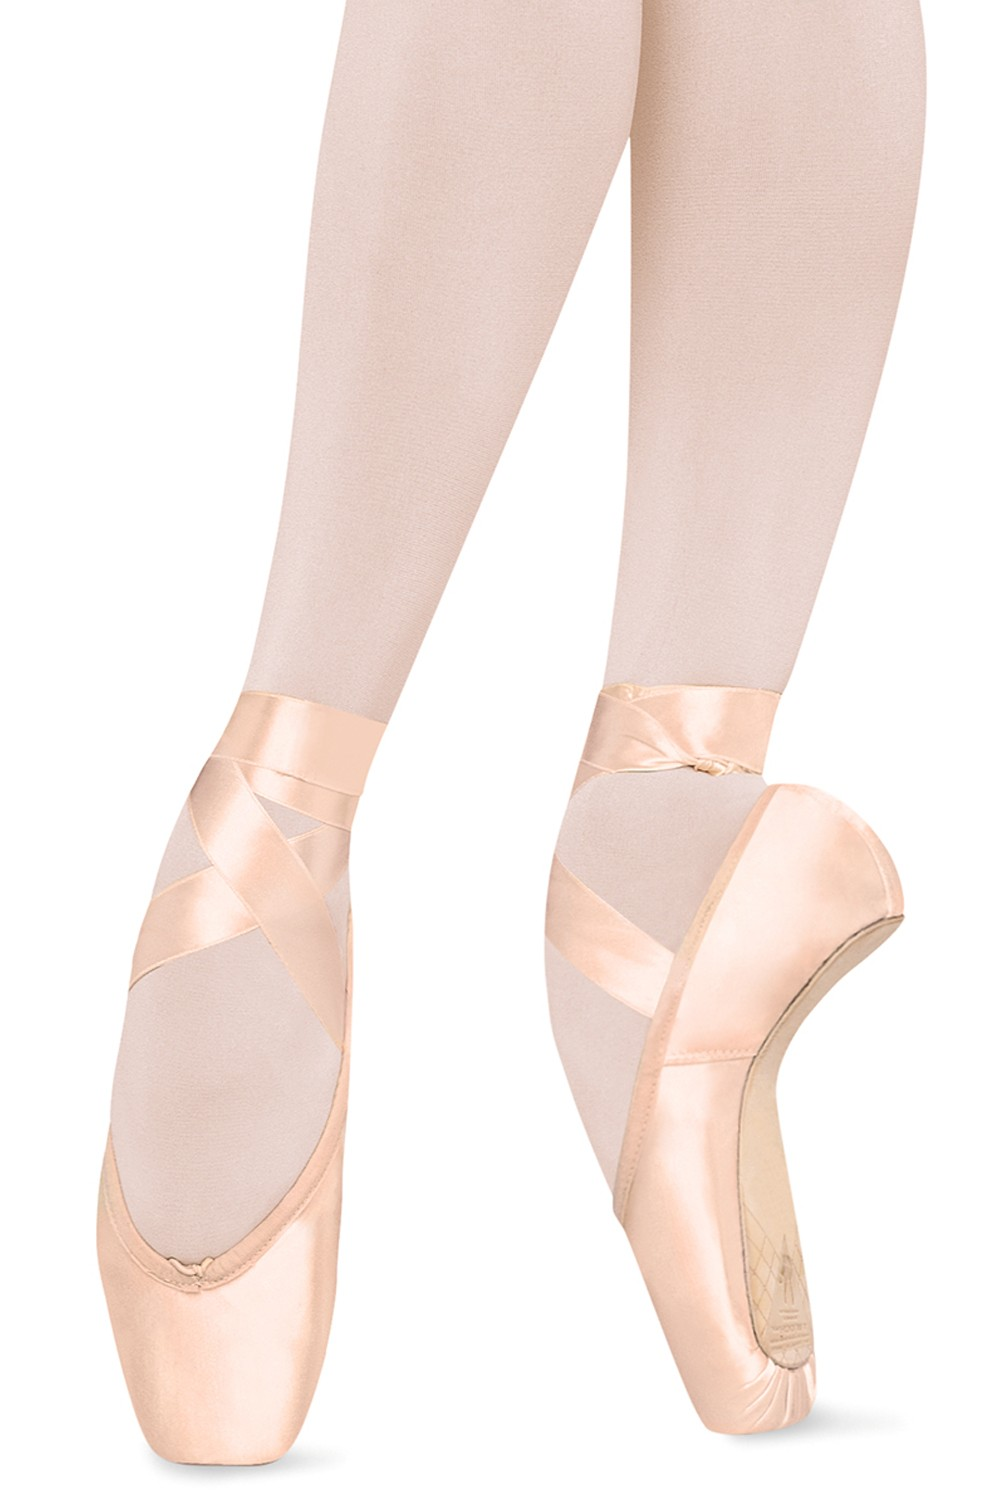 BLOCH Professional Quality Pointe Shoes  BLOCH Shop UK